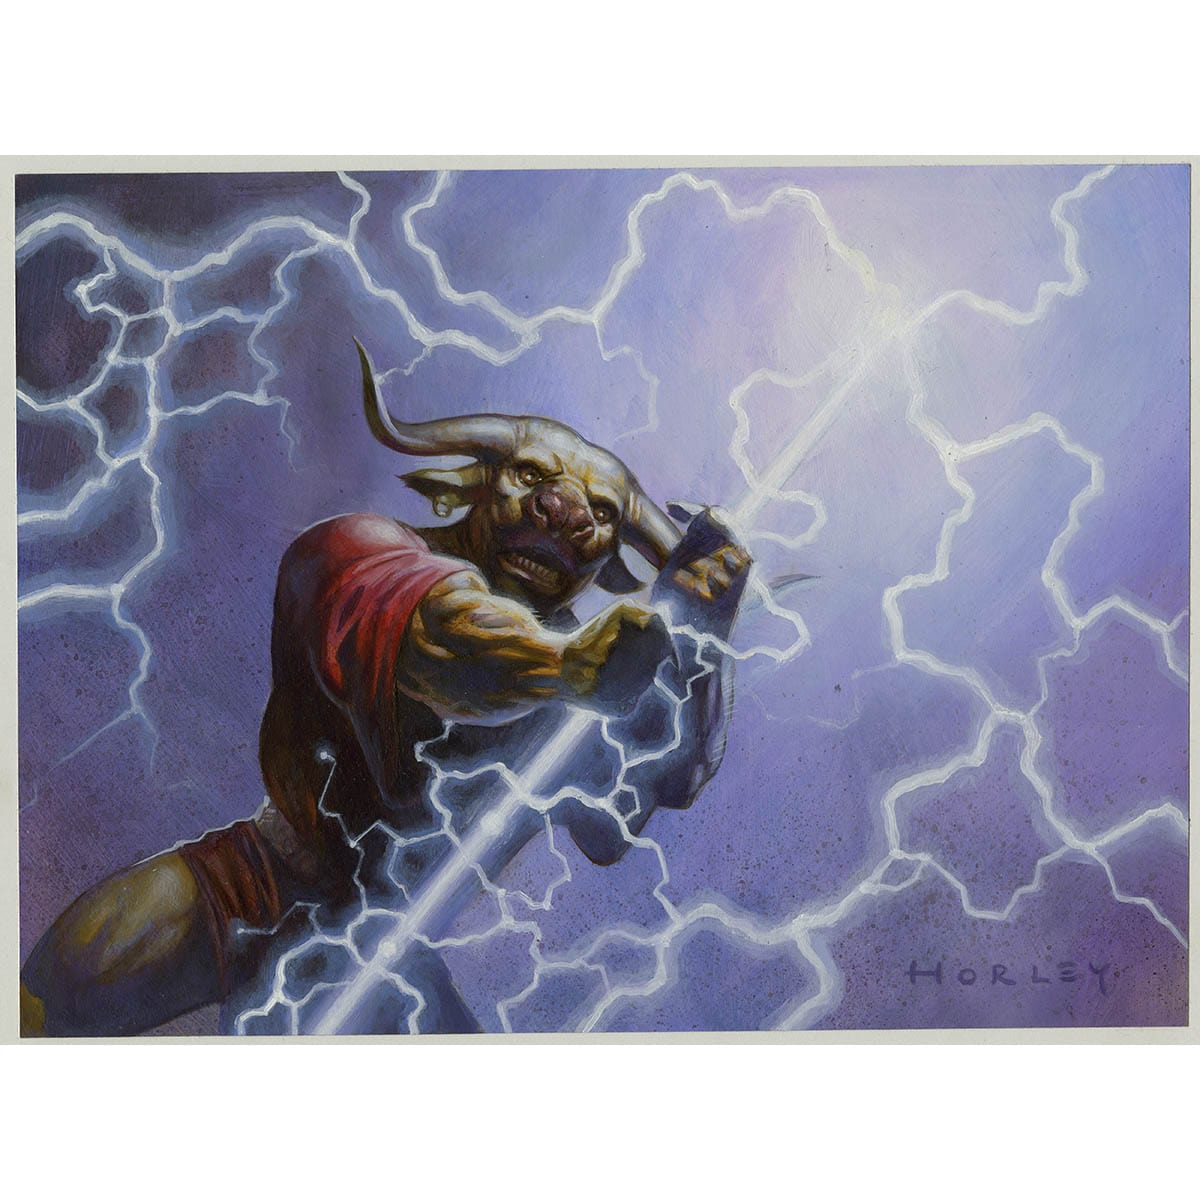 Anaba Shaman Print - Print - Original Magic Art - Accessories for Magic the Gathering and other card games